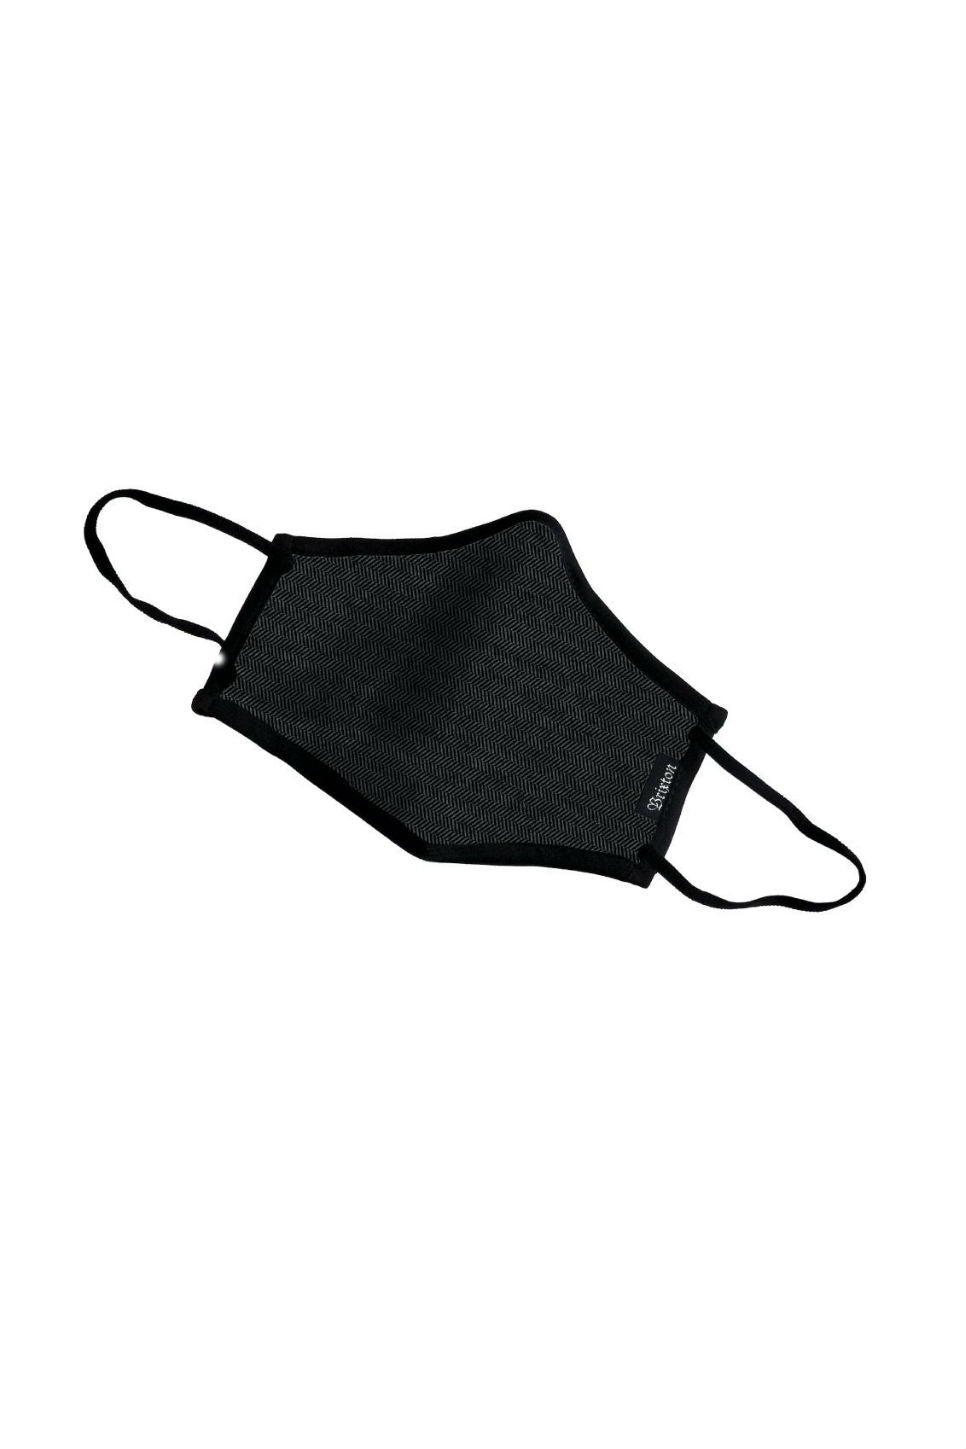 YOUTH FACE MASK Black Herringbone